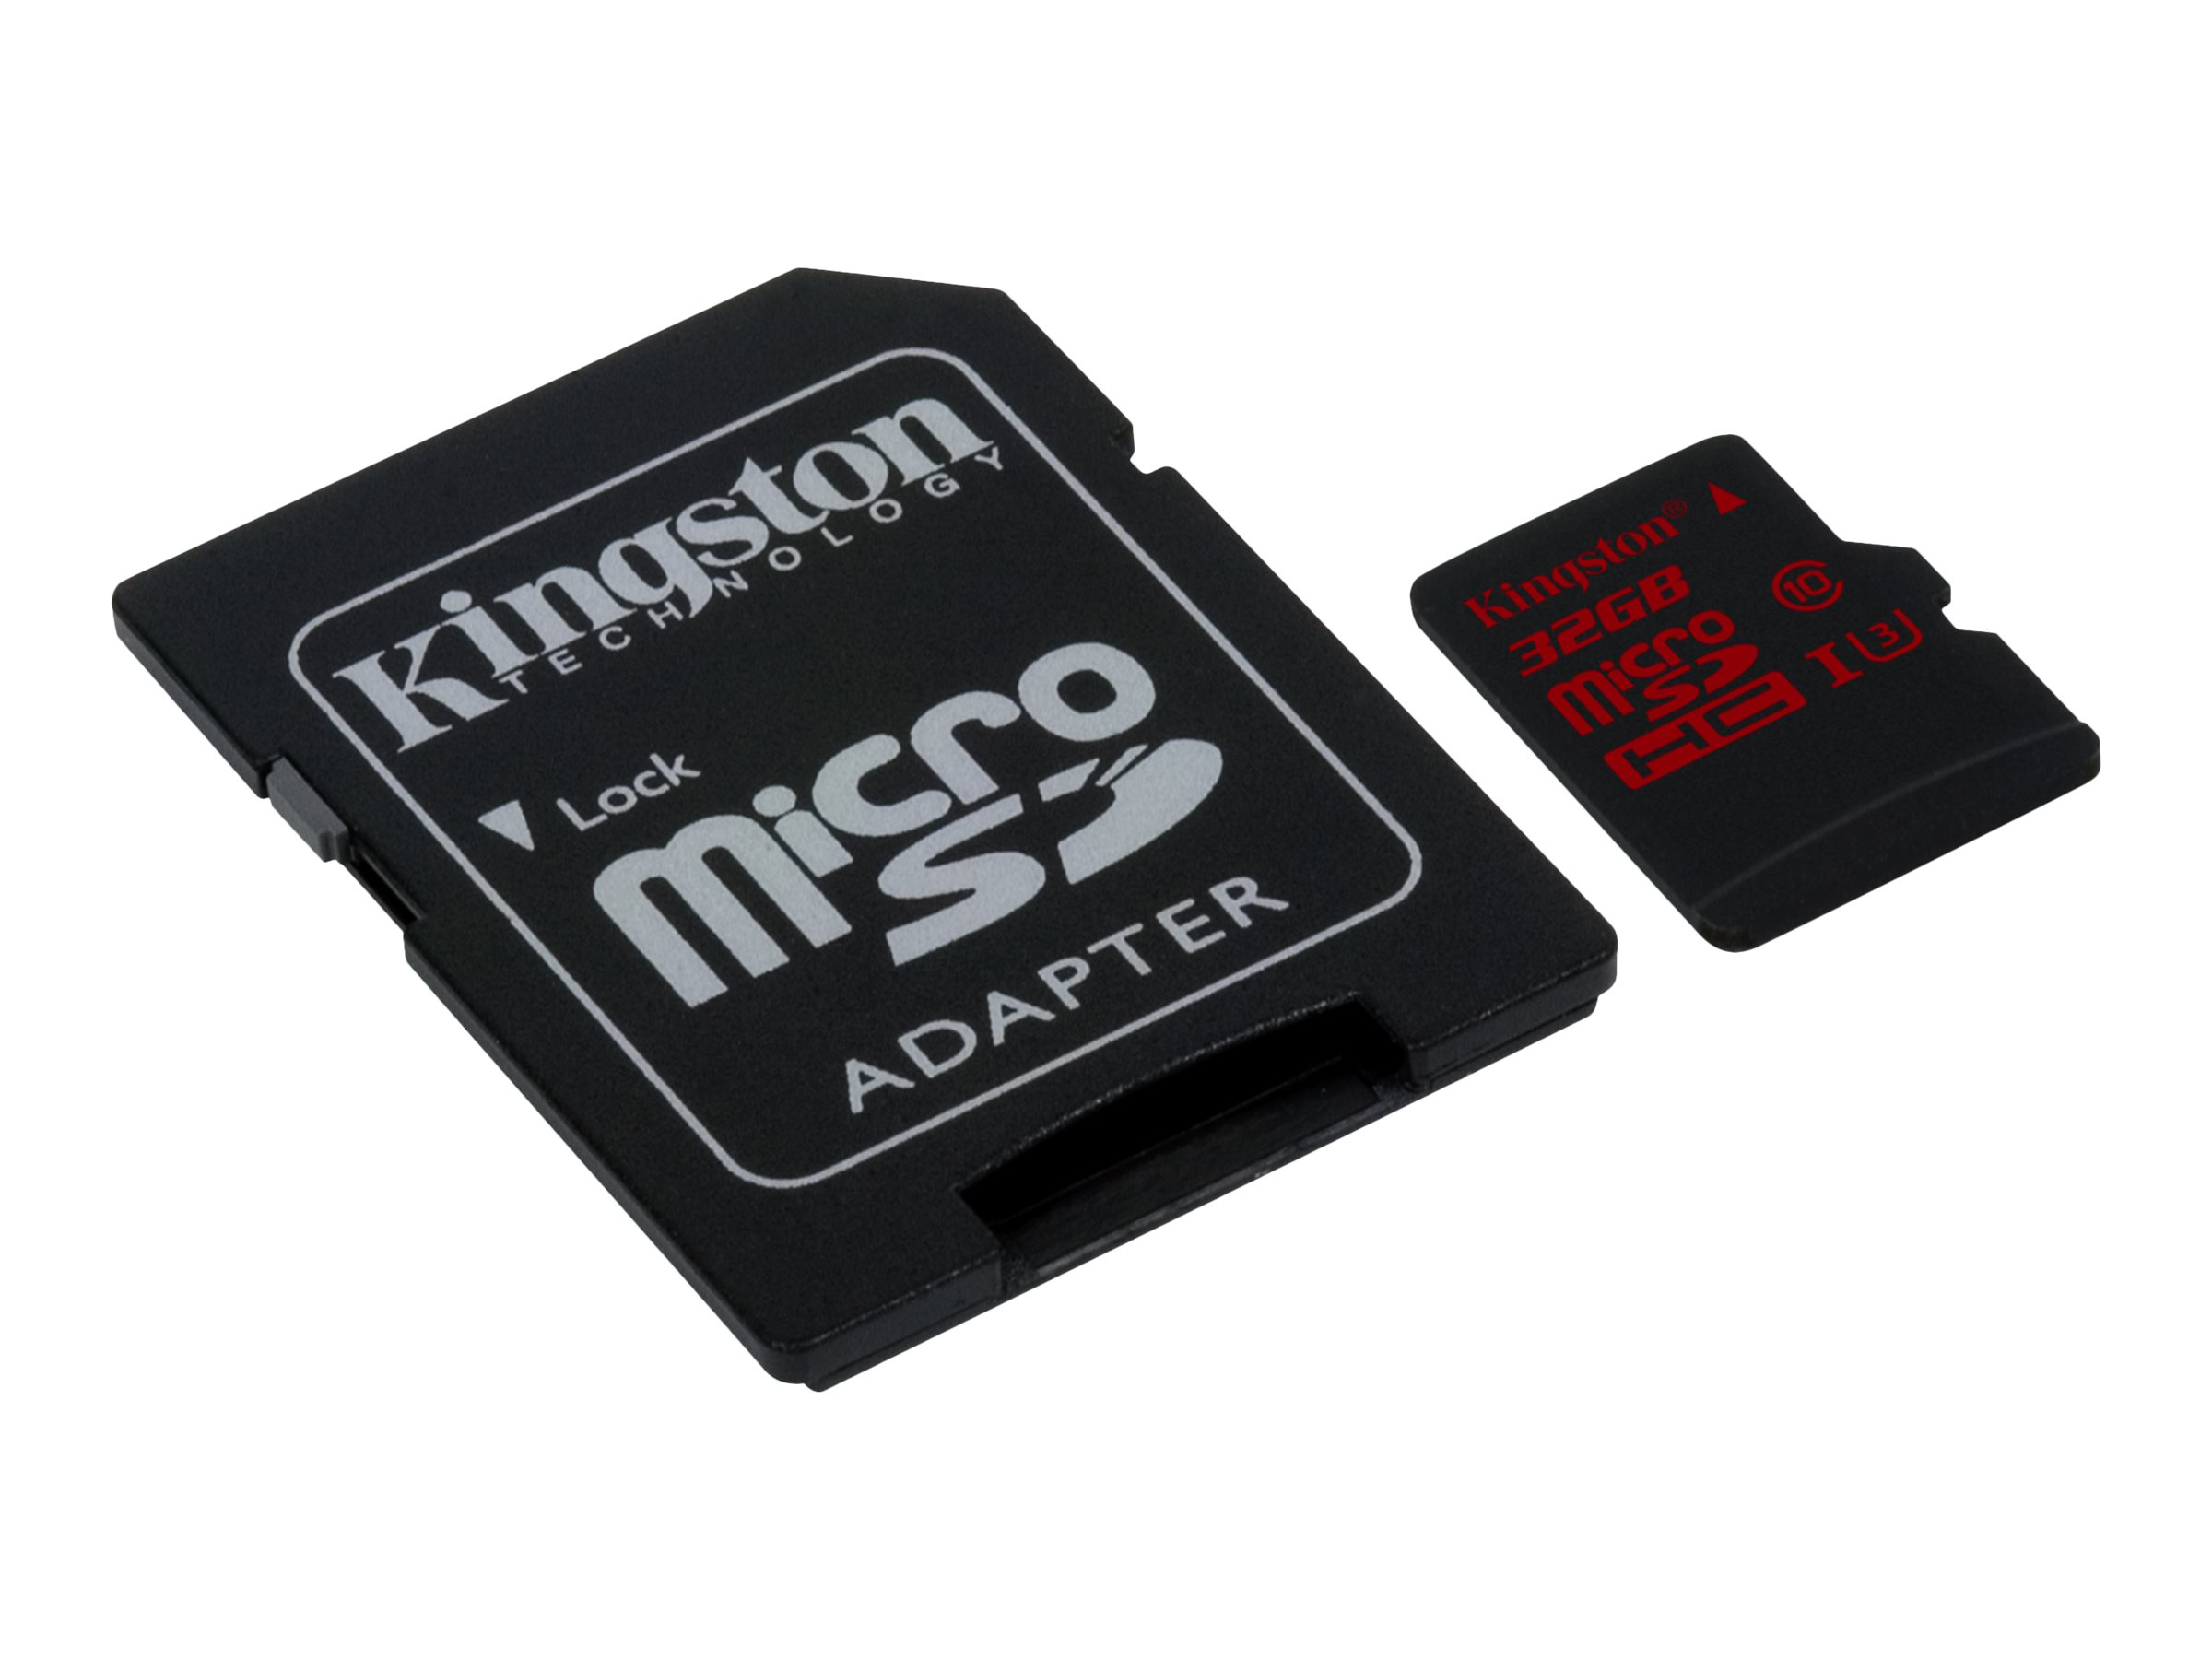 Kingston - Flash-Speicherkarte (microSDHC/SD-Adapter inbegriffen) - 32 GB - UHS Class 3 - microSDHC UHS-I